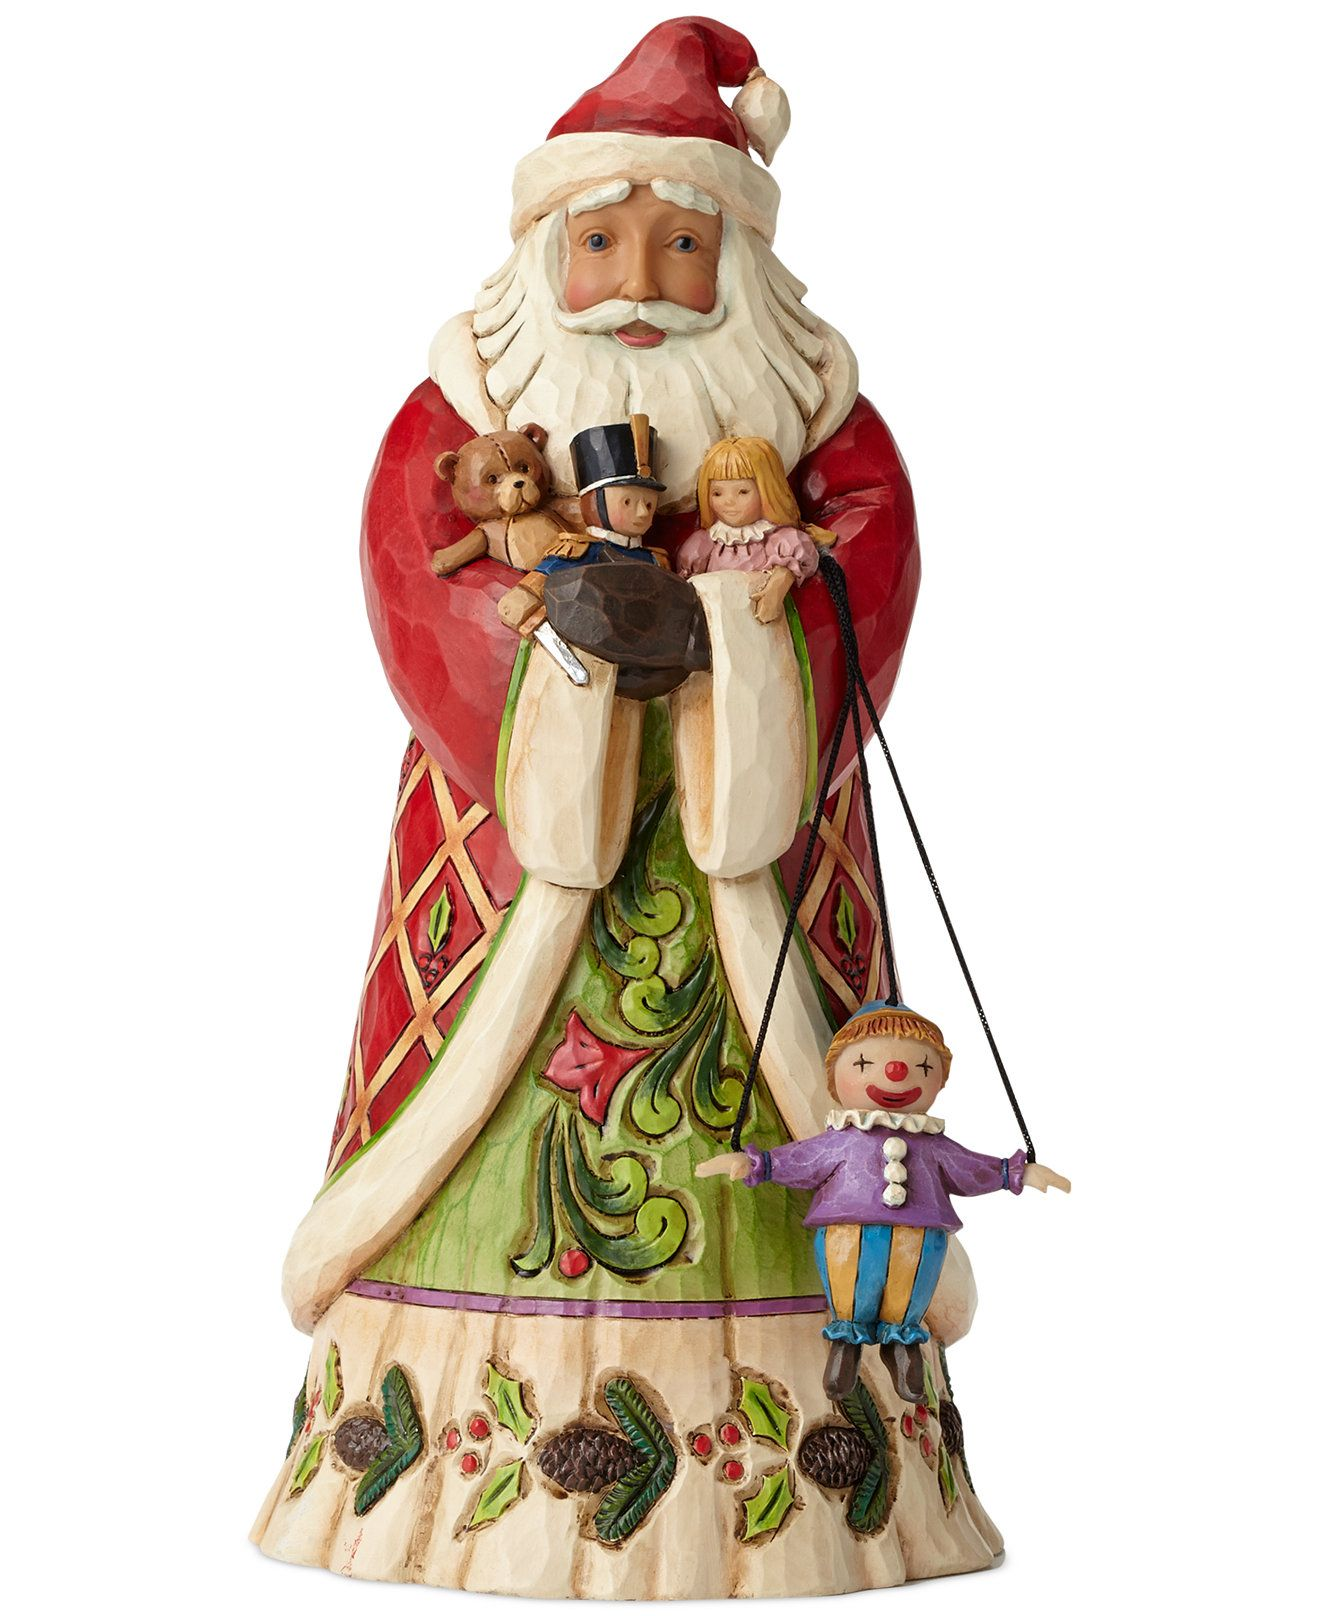 Jim Shore Santa With Toys Collectible Figurine Christmas Decorations For The Home Macy S Jim Shore Christmas Jim Shore Christmas Figurines